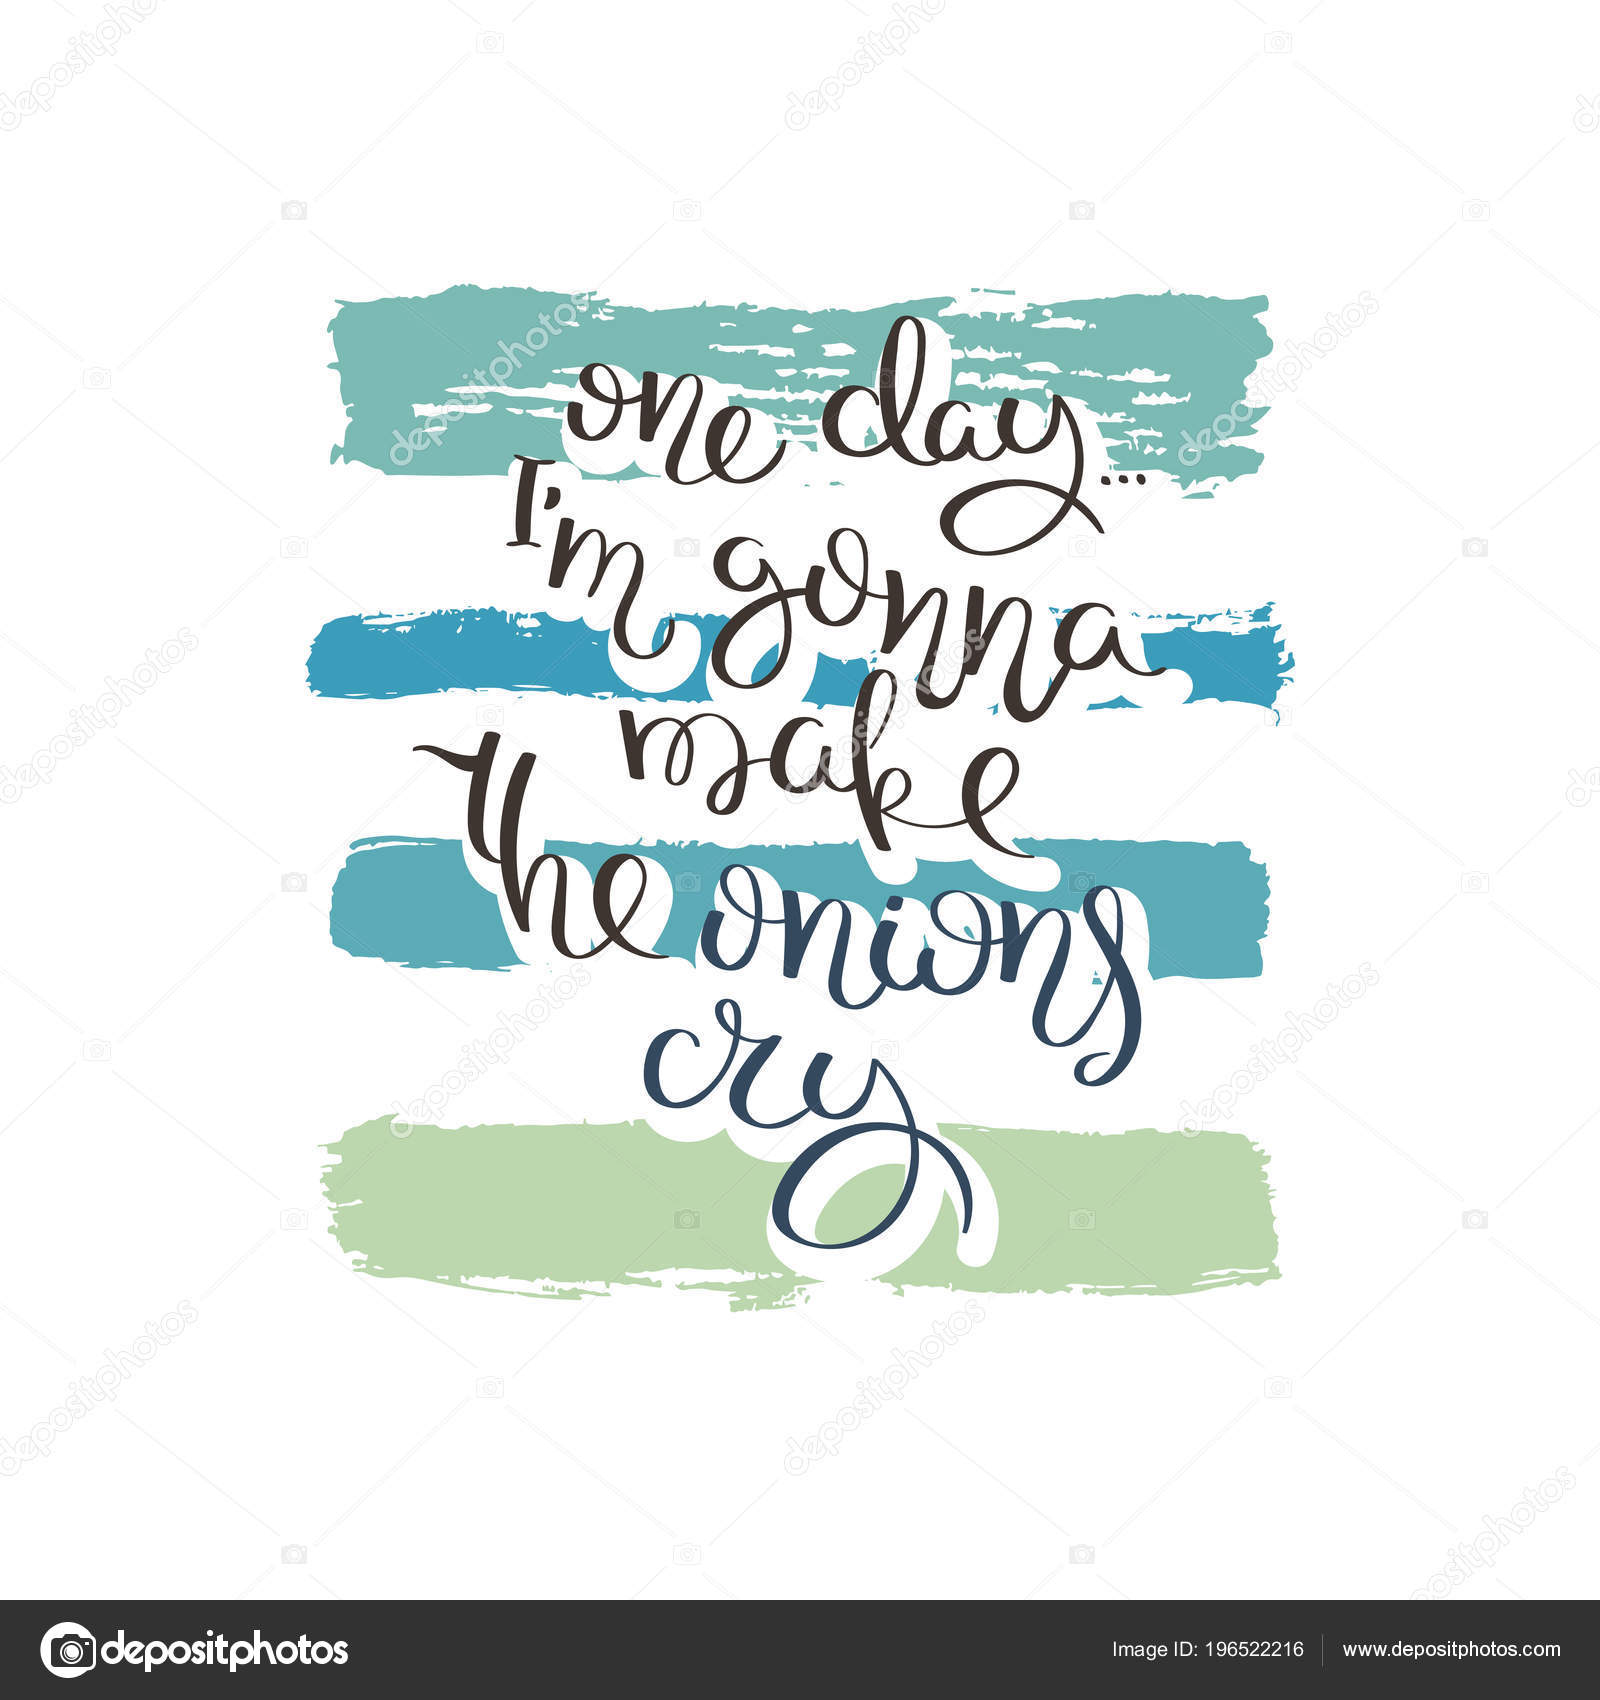 One day i am gonna make the onions cry hand drawn motivation quote creative vector typography concept for design and printing ready for cards t shirts